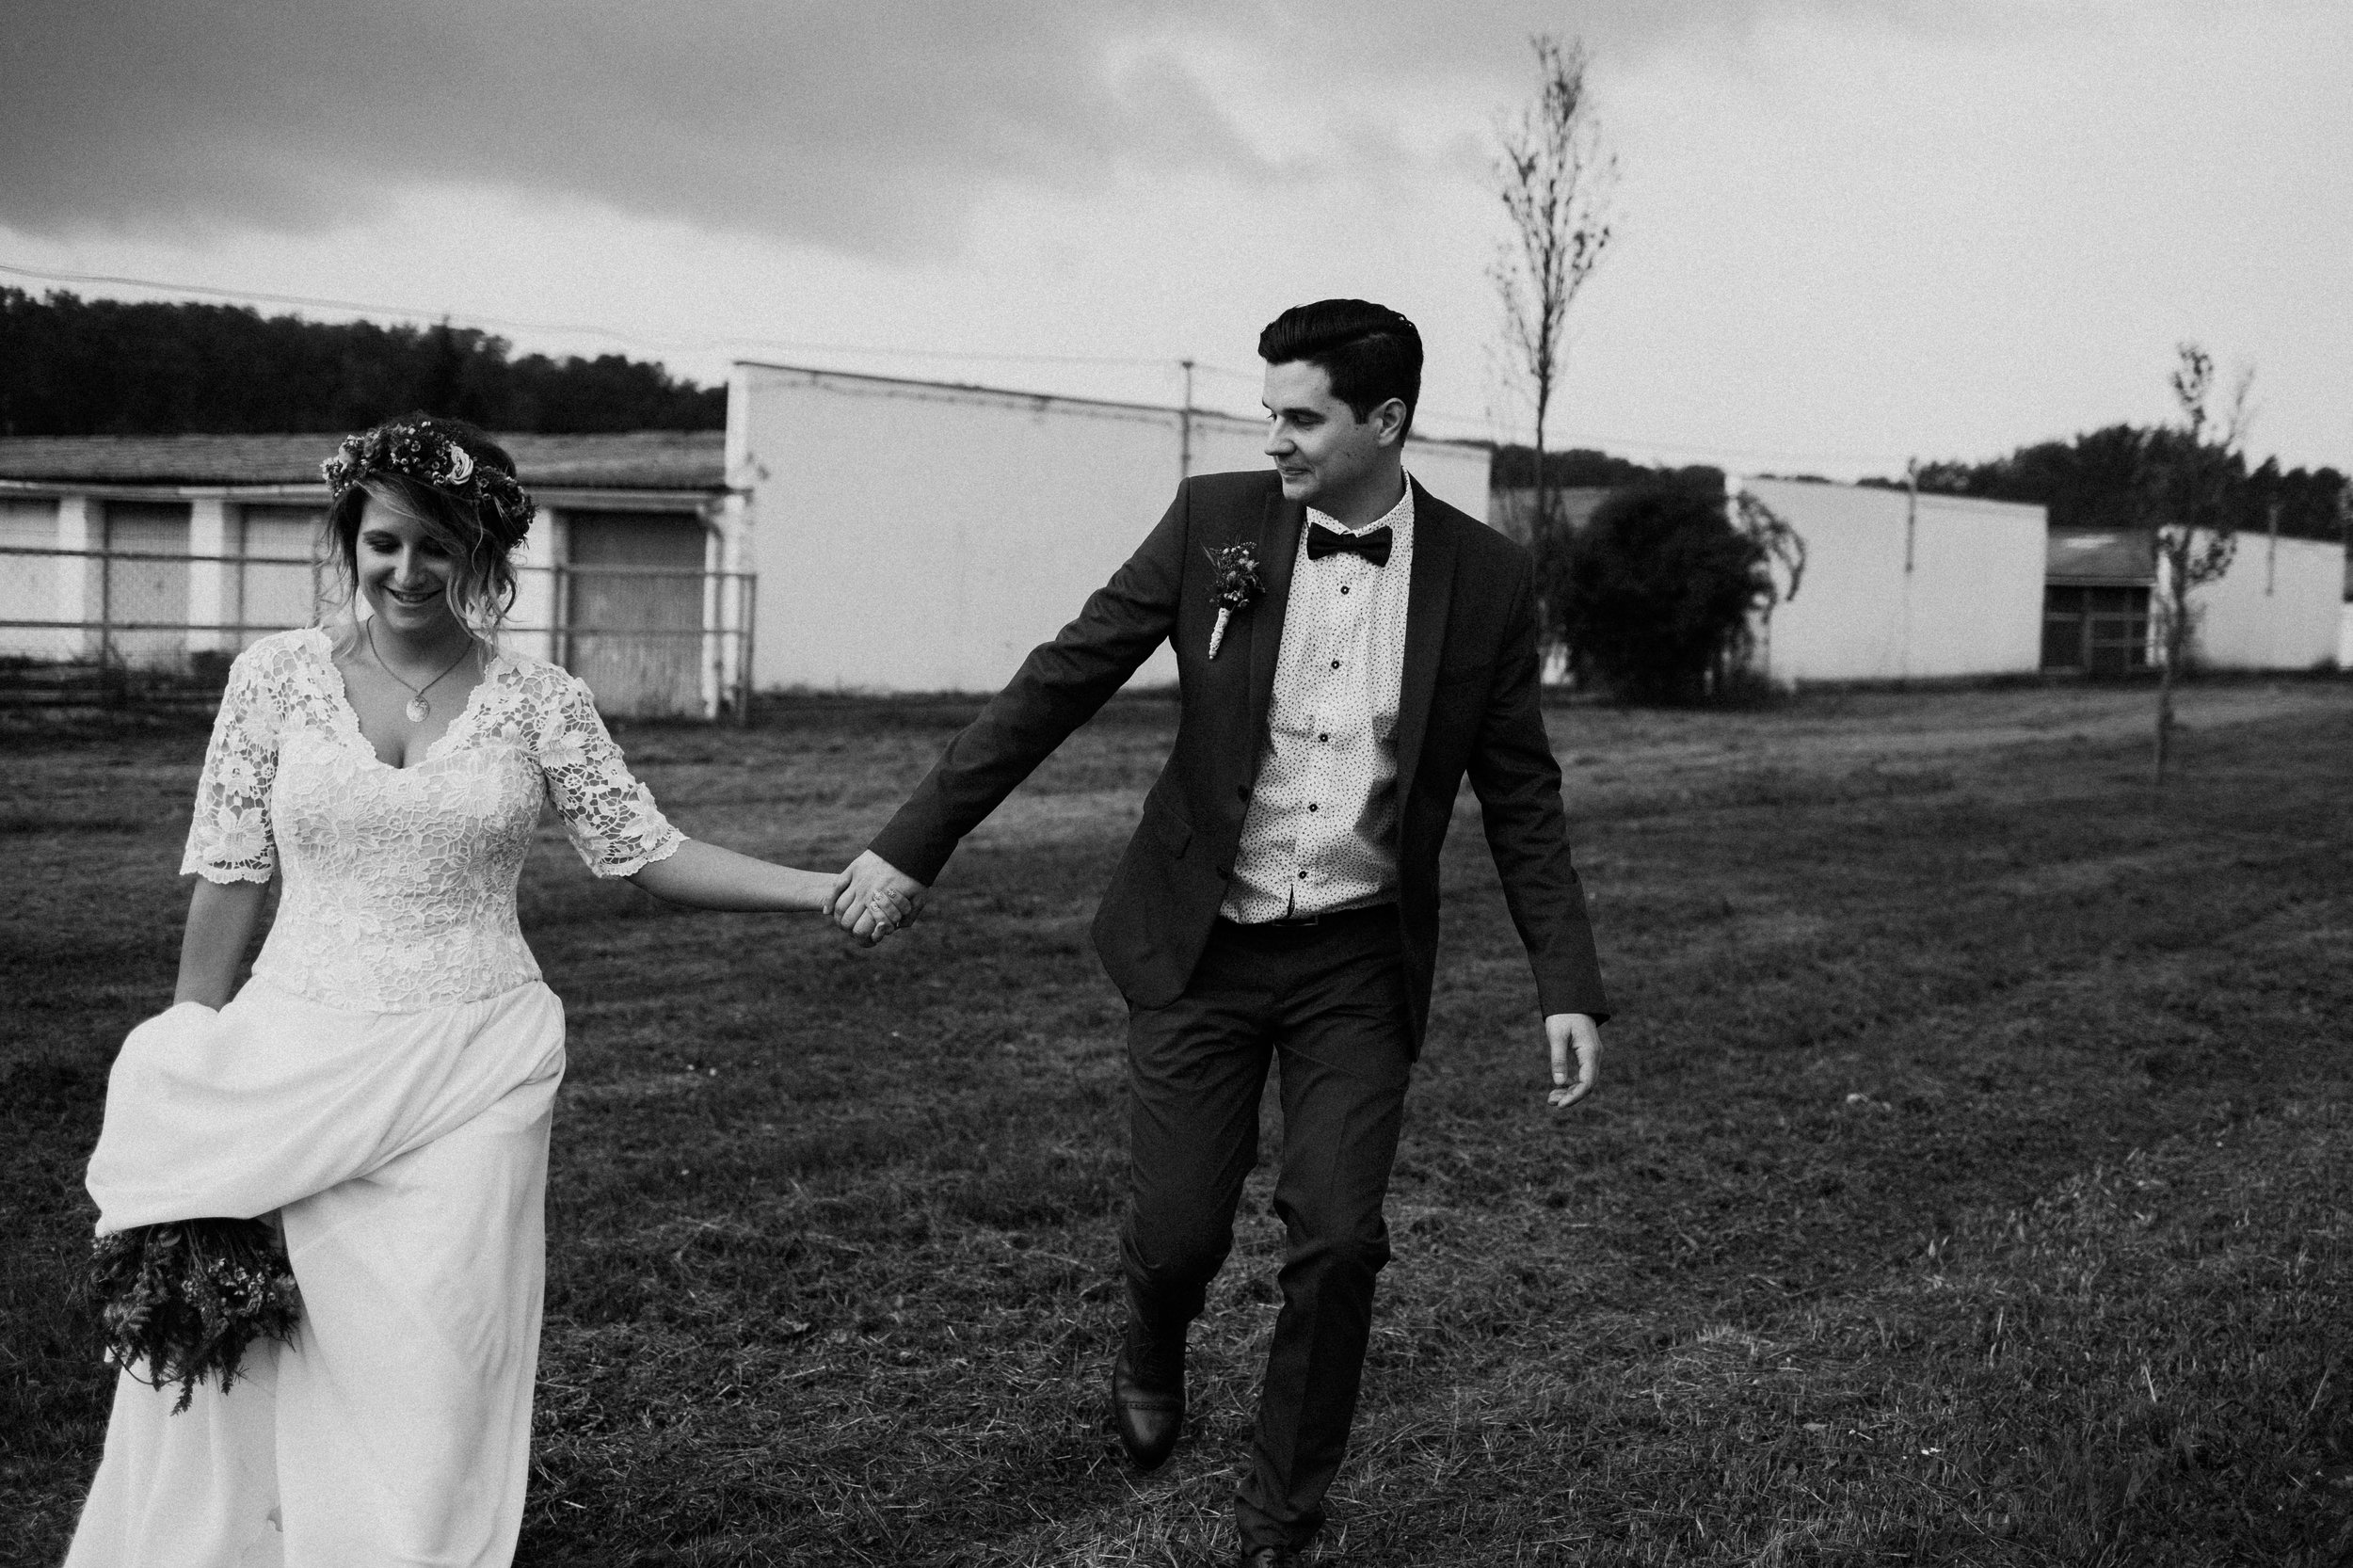 20170506_Kriszta+David_wedding_w_147__MG_4931_2.jpg